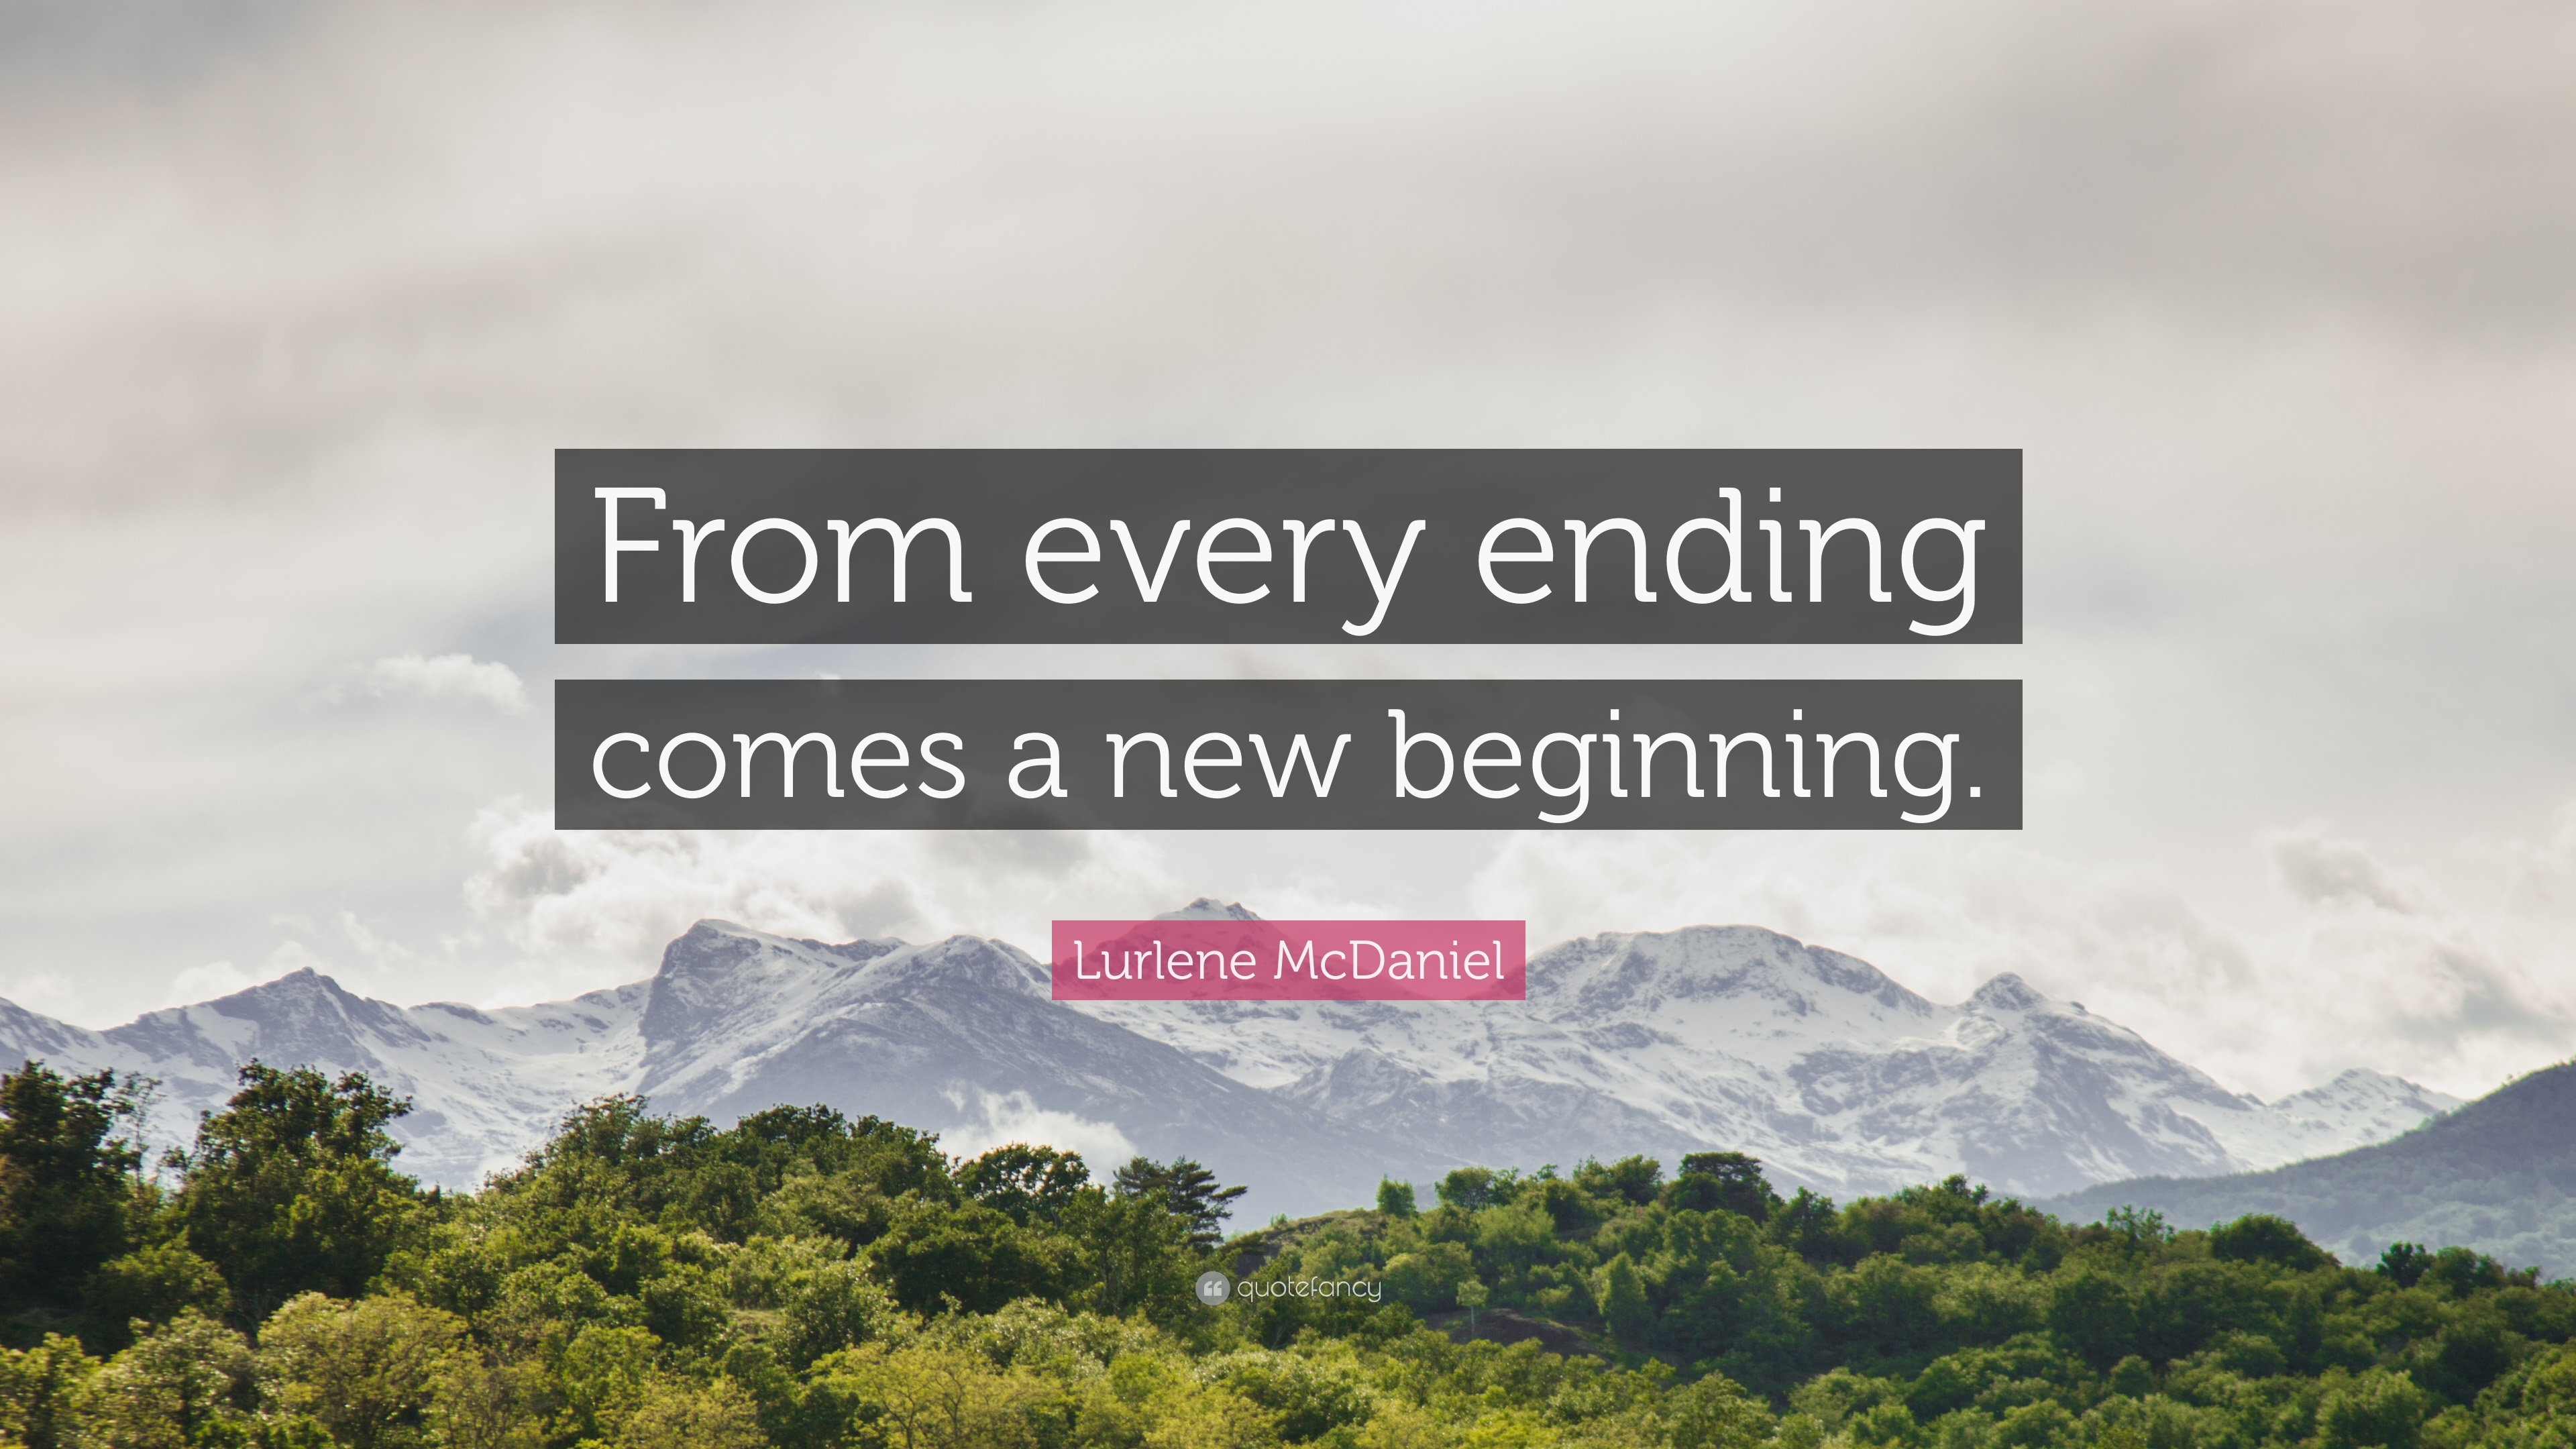 Lurlene Mcdaniel Quote From Every Ending Comes A New Beginning